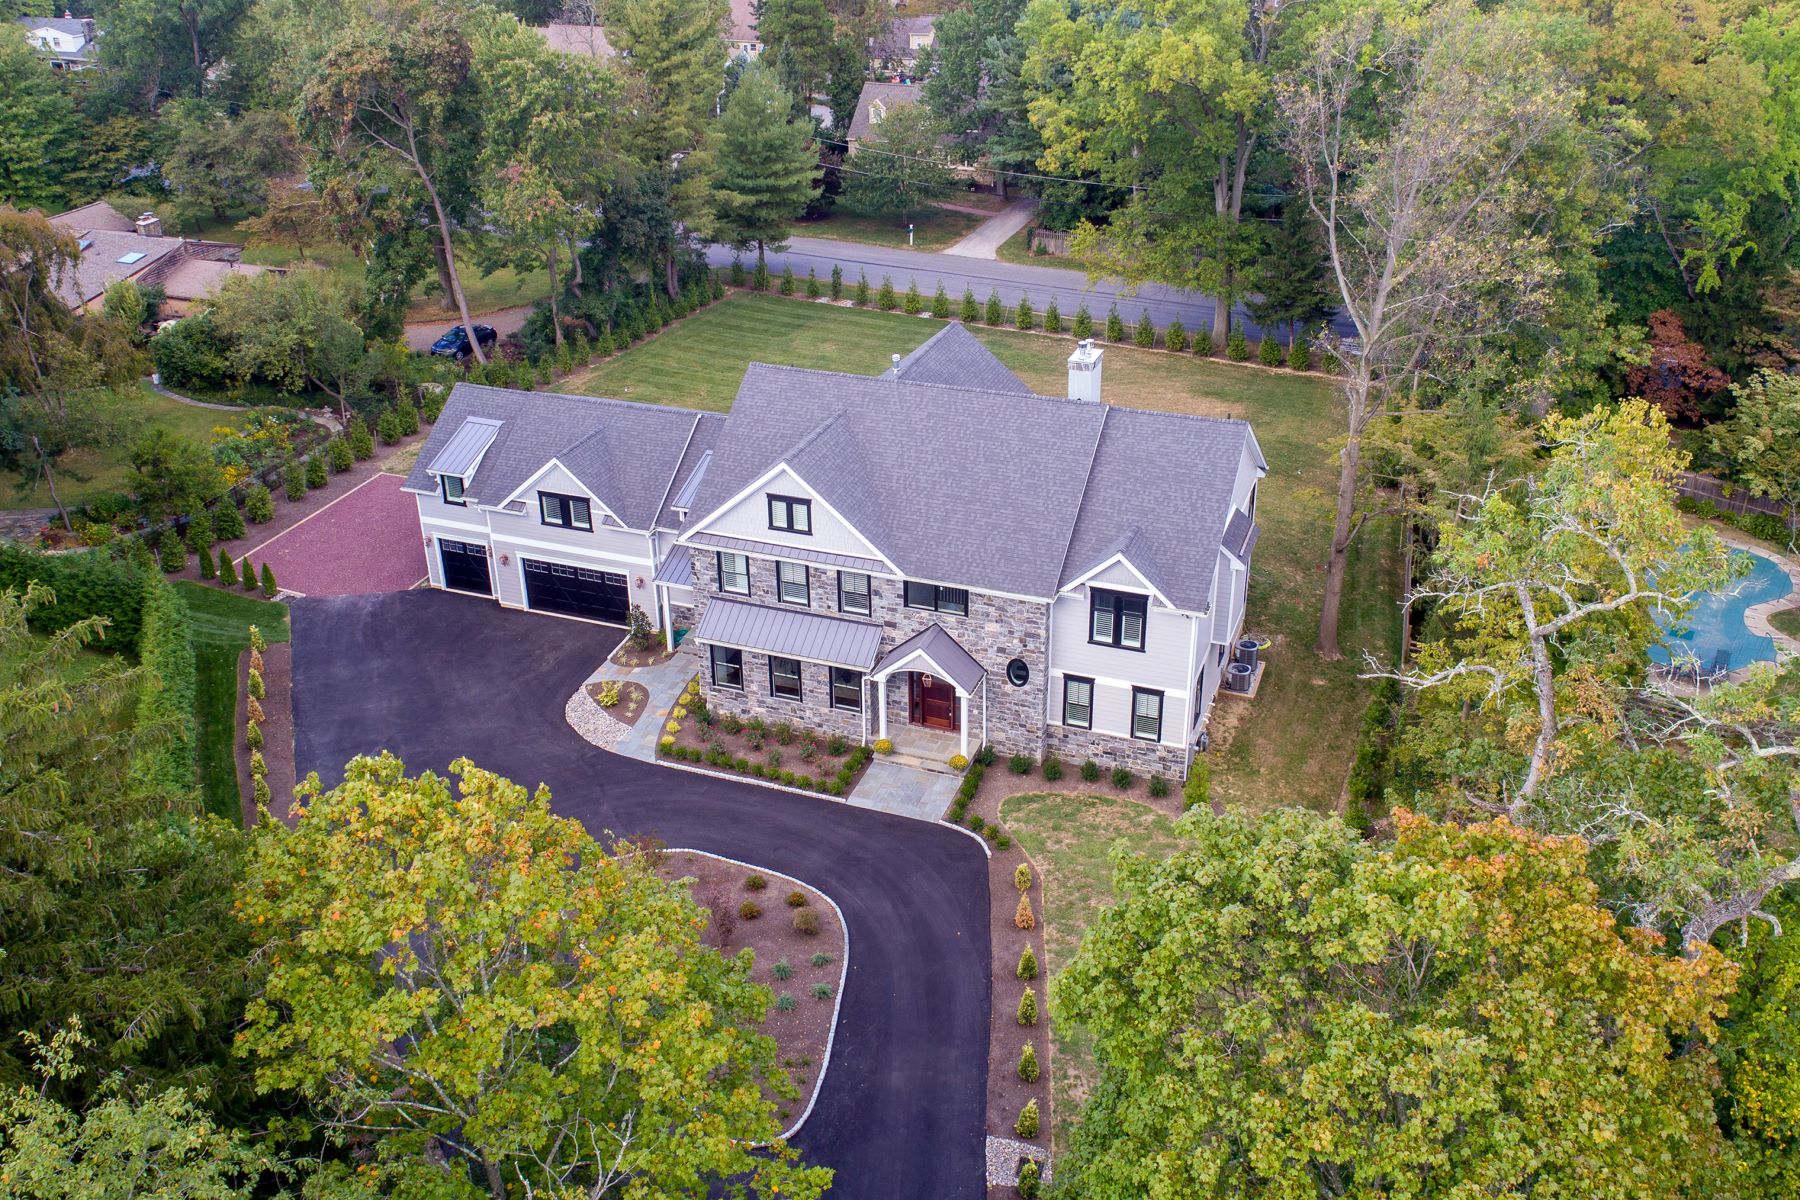 Single Family Homes for Sale at 136 TUNBRIDGE CIR Haverford, Pennsylvania 19041 United States